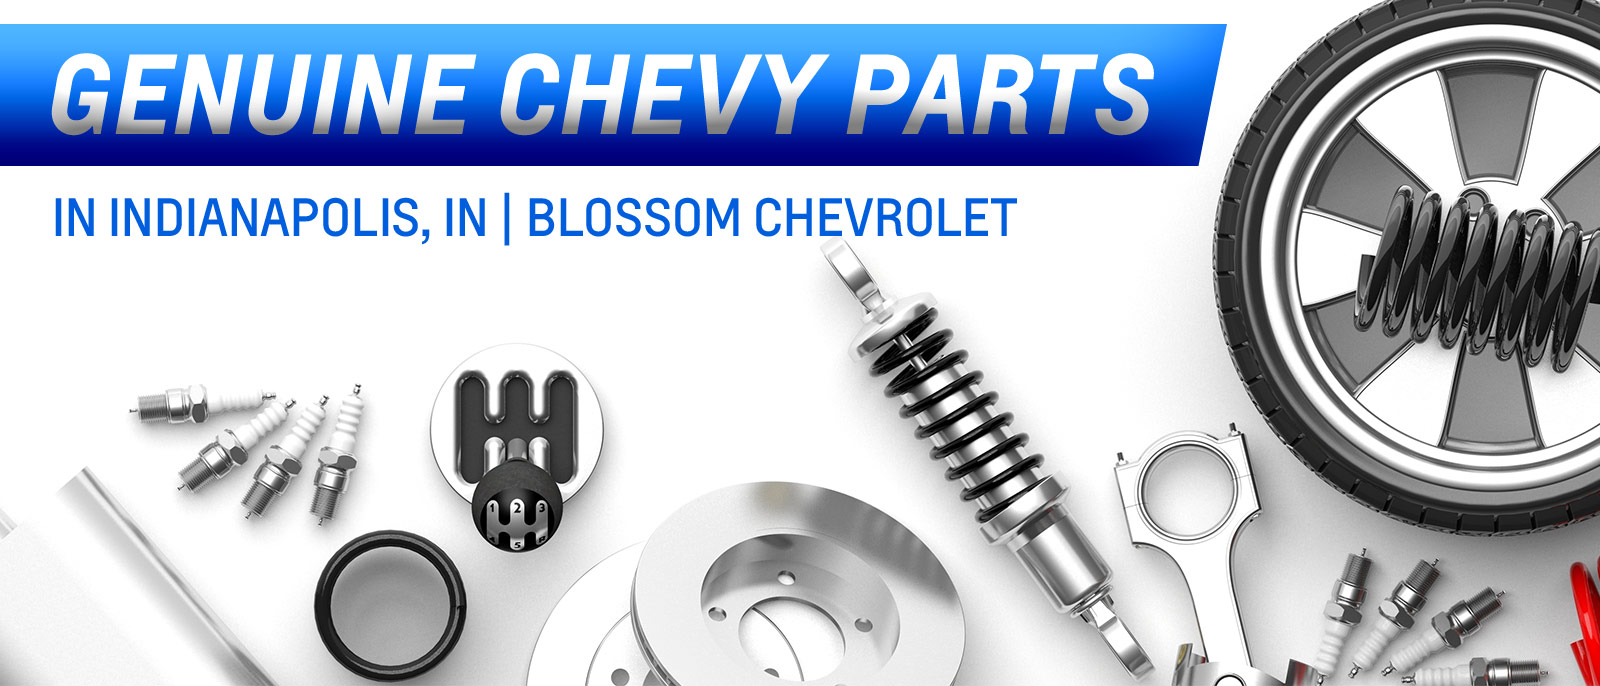 Chevrolet Parts And Accessories In Indianapolis, IN